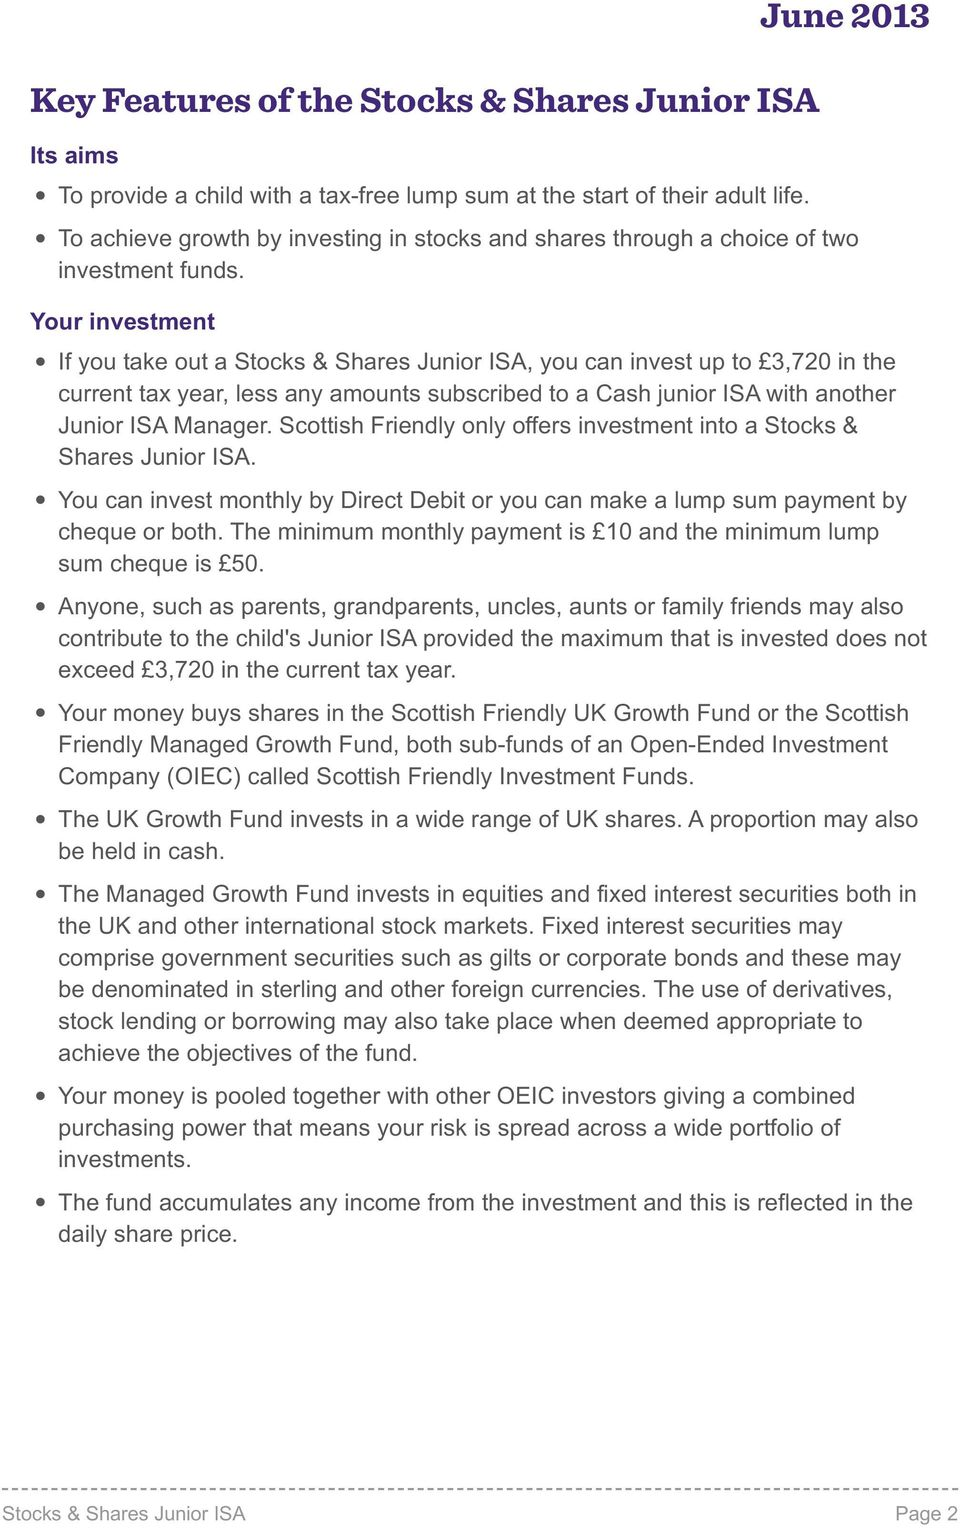 Scottish Friendy ony offers investment into a Stocks & Shares Junior ISA. June 2013 You can invest monthy by Direct Debit or you can make a ump sum payment by cheque or both.